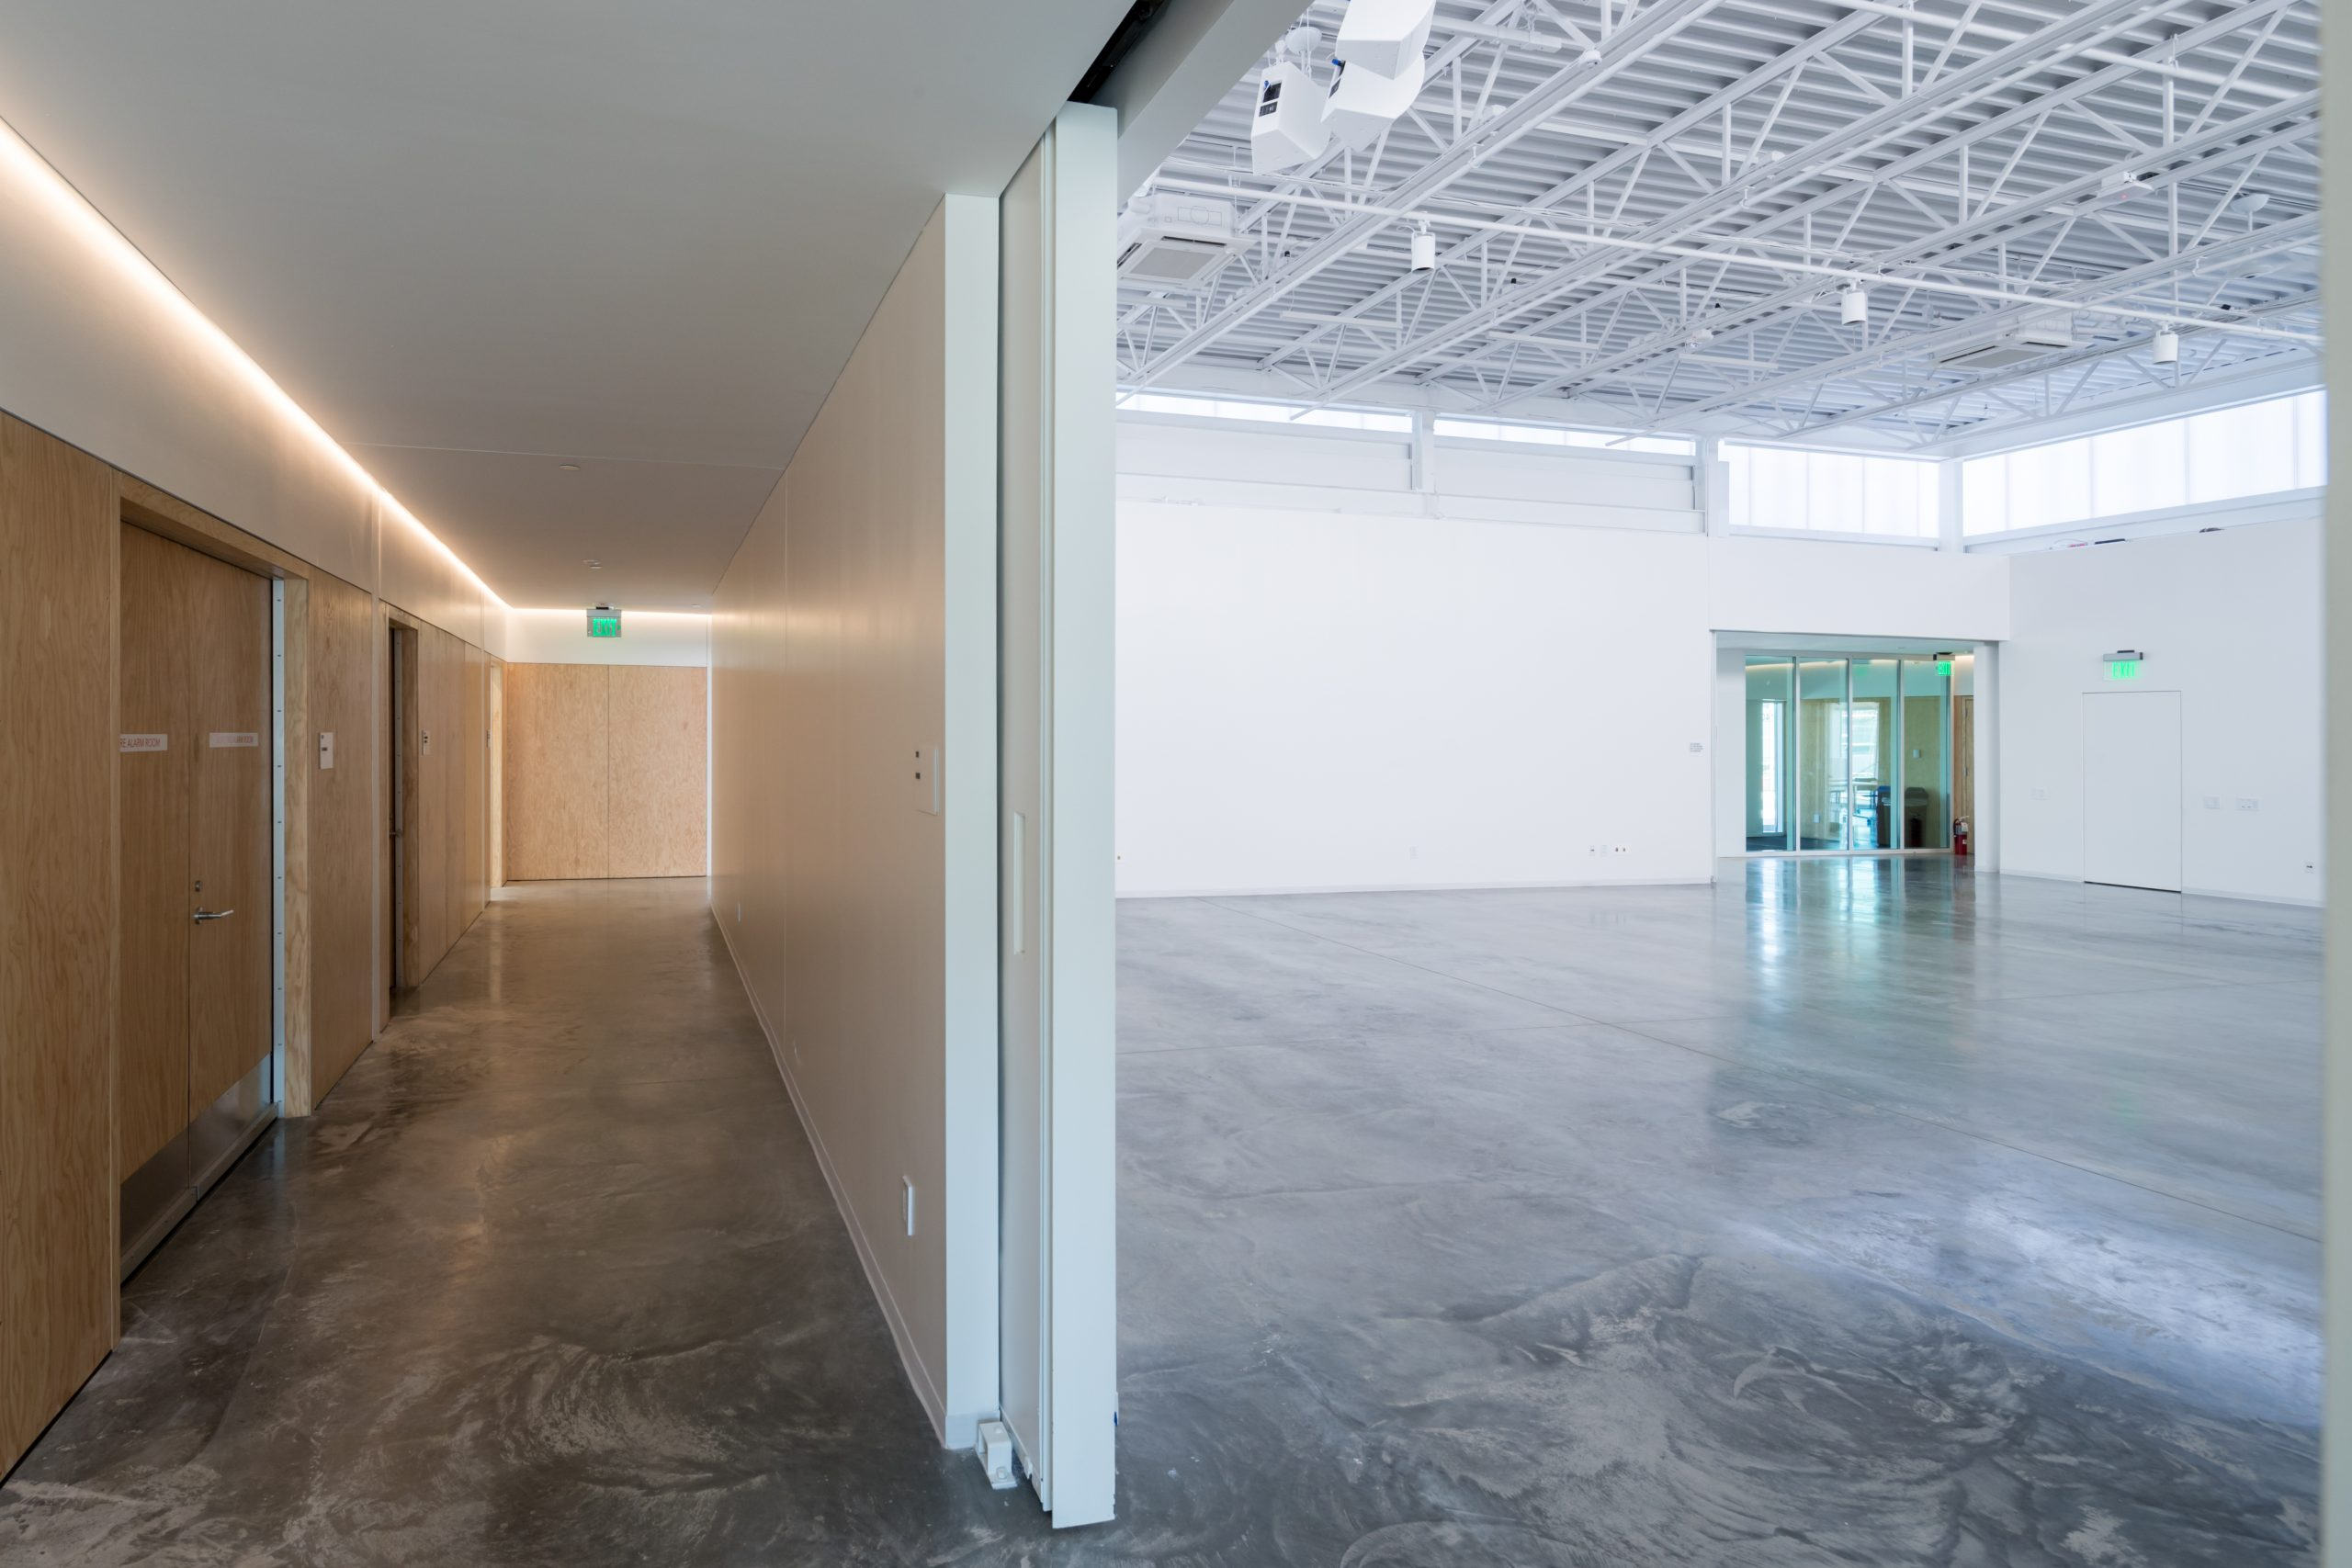 Interior of a studio space in the ArtLab with concrete floors